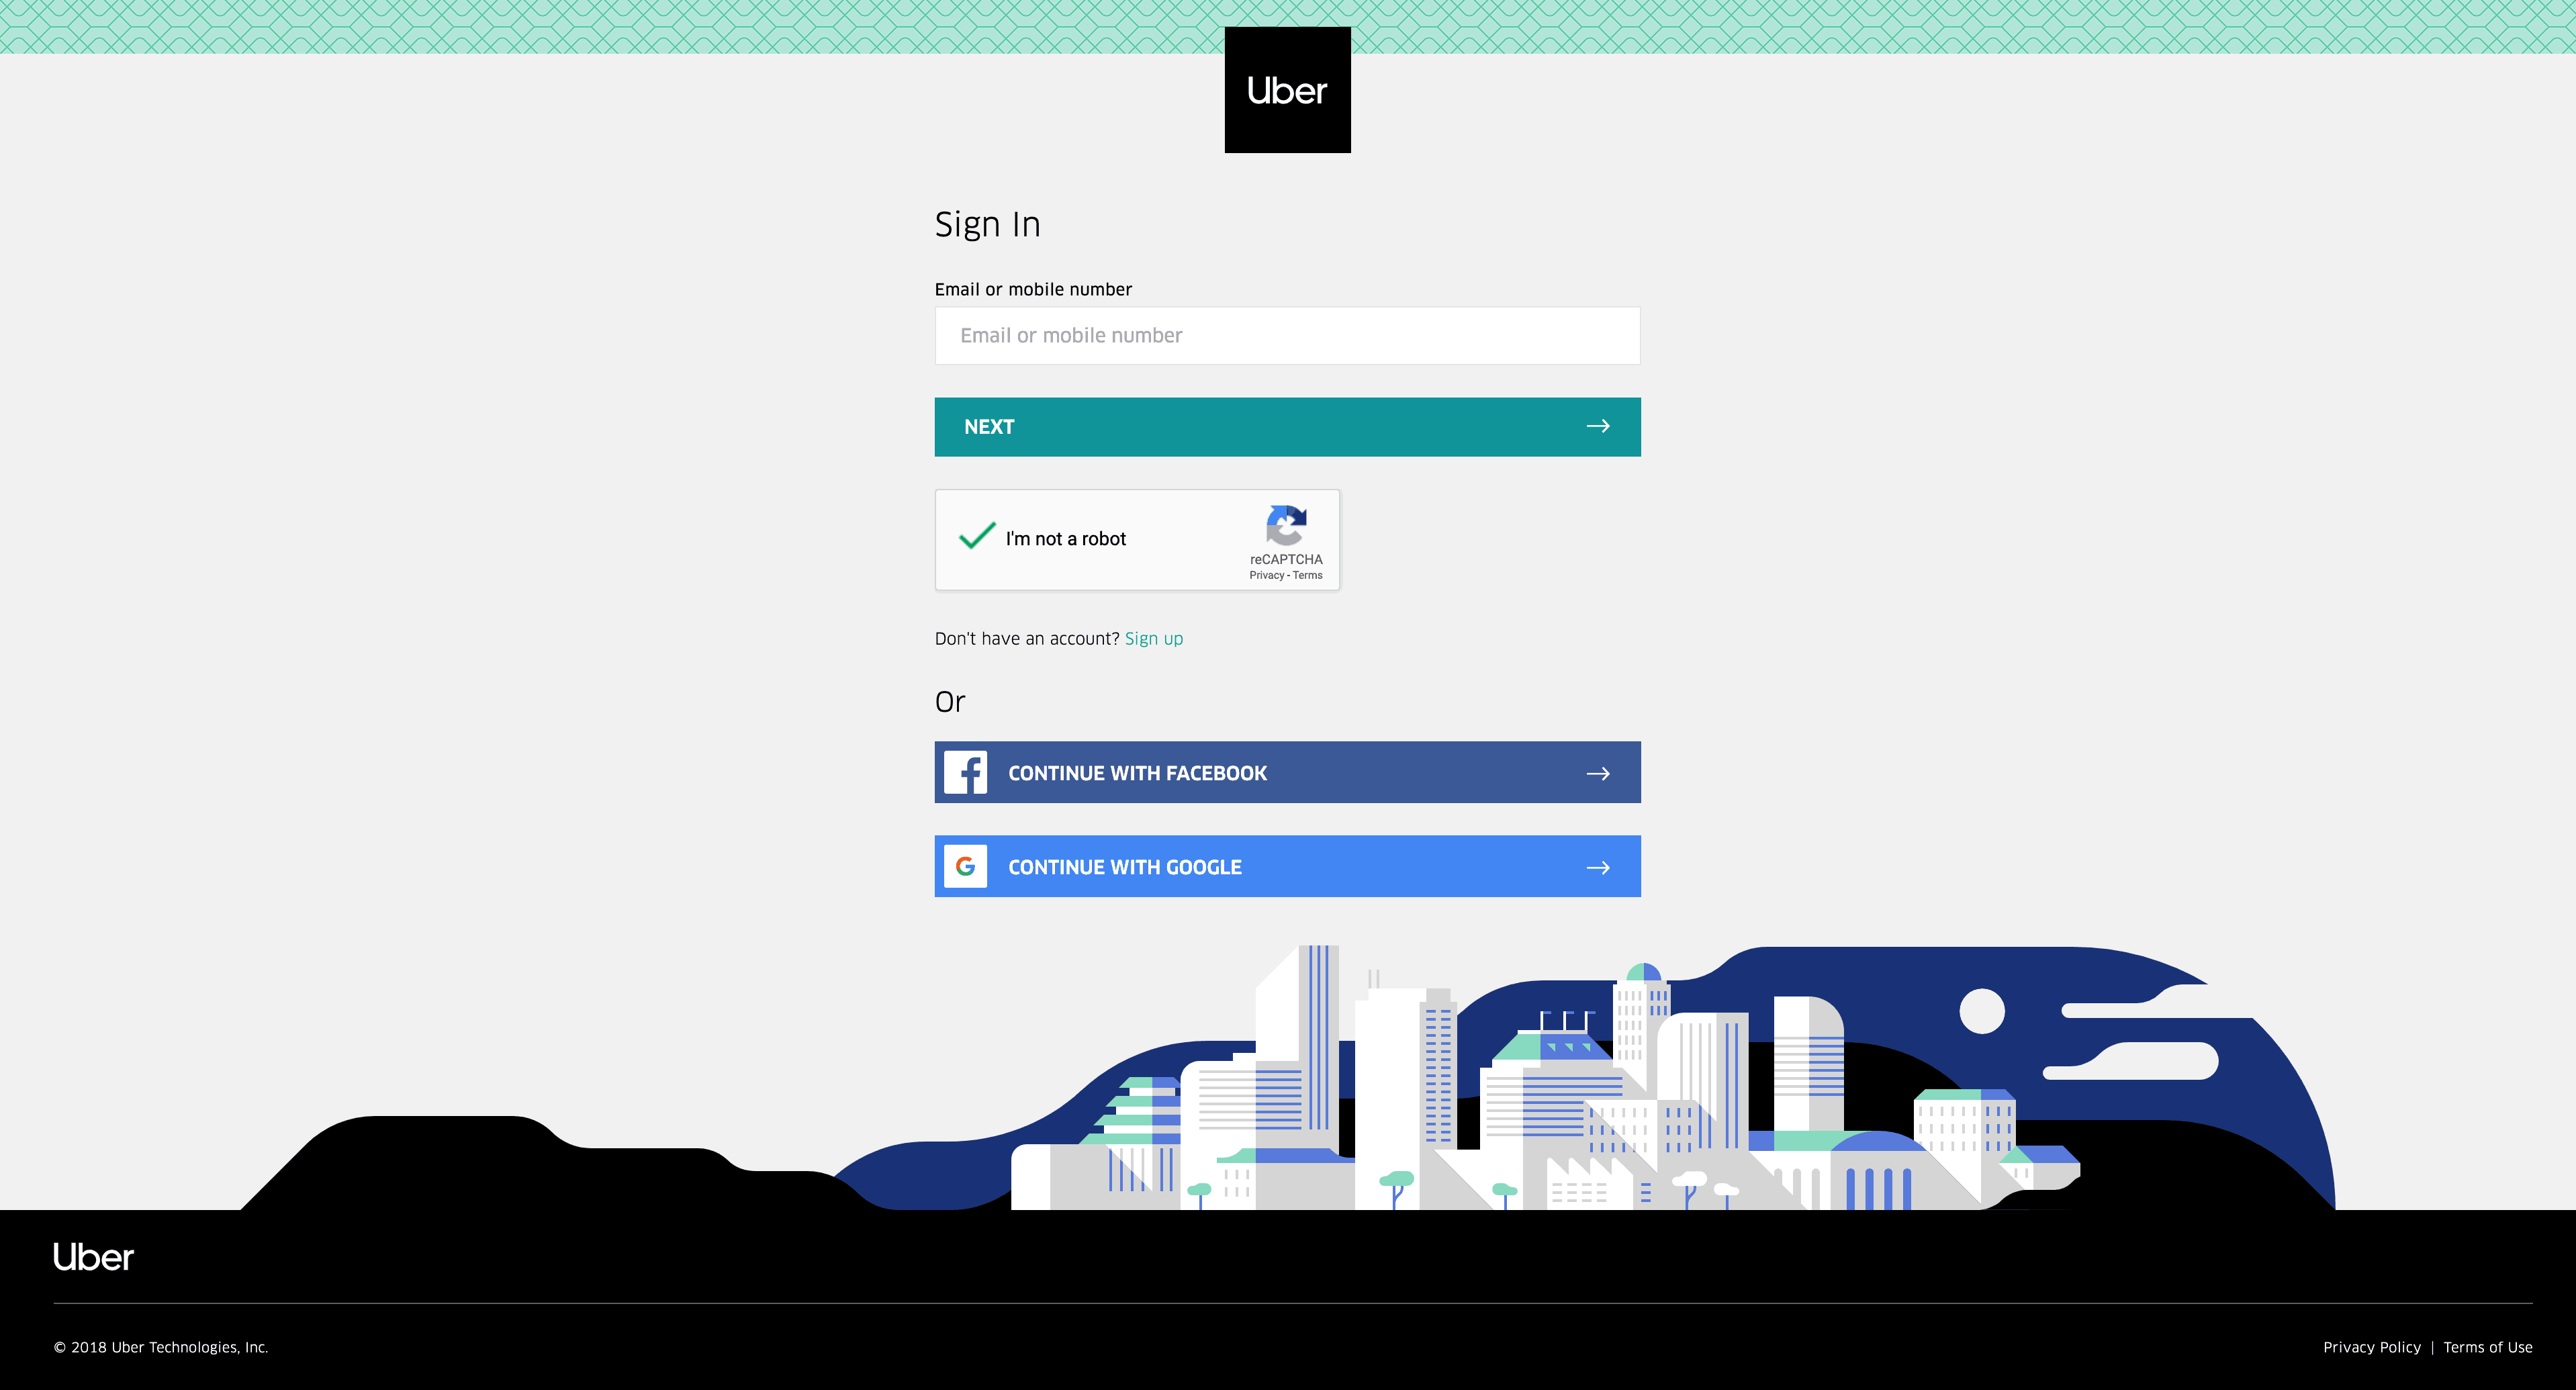 Sign In/Log In by Uber